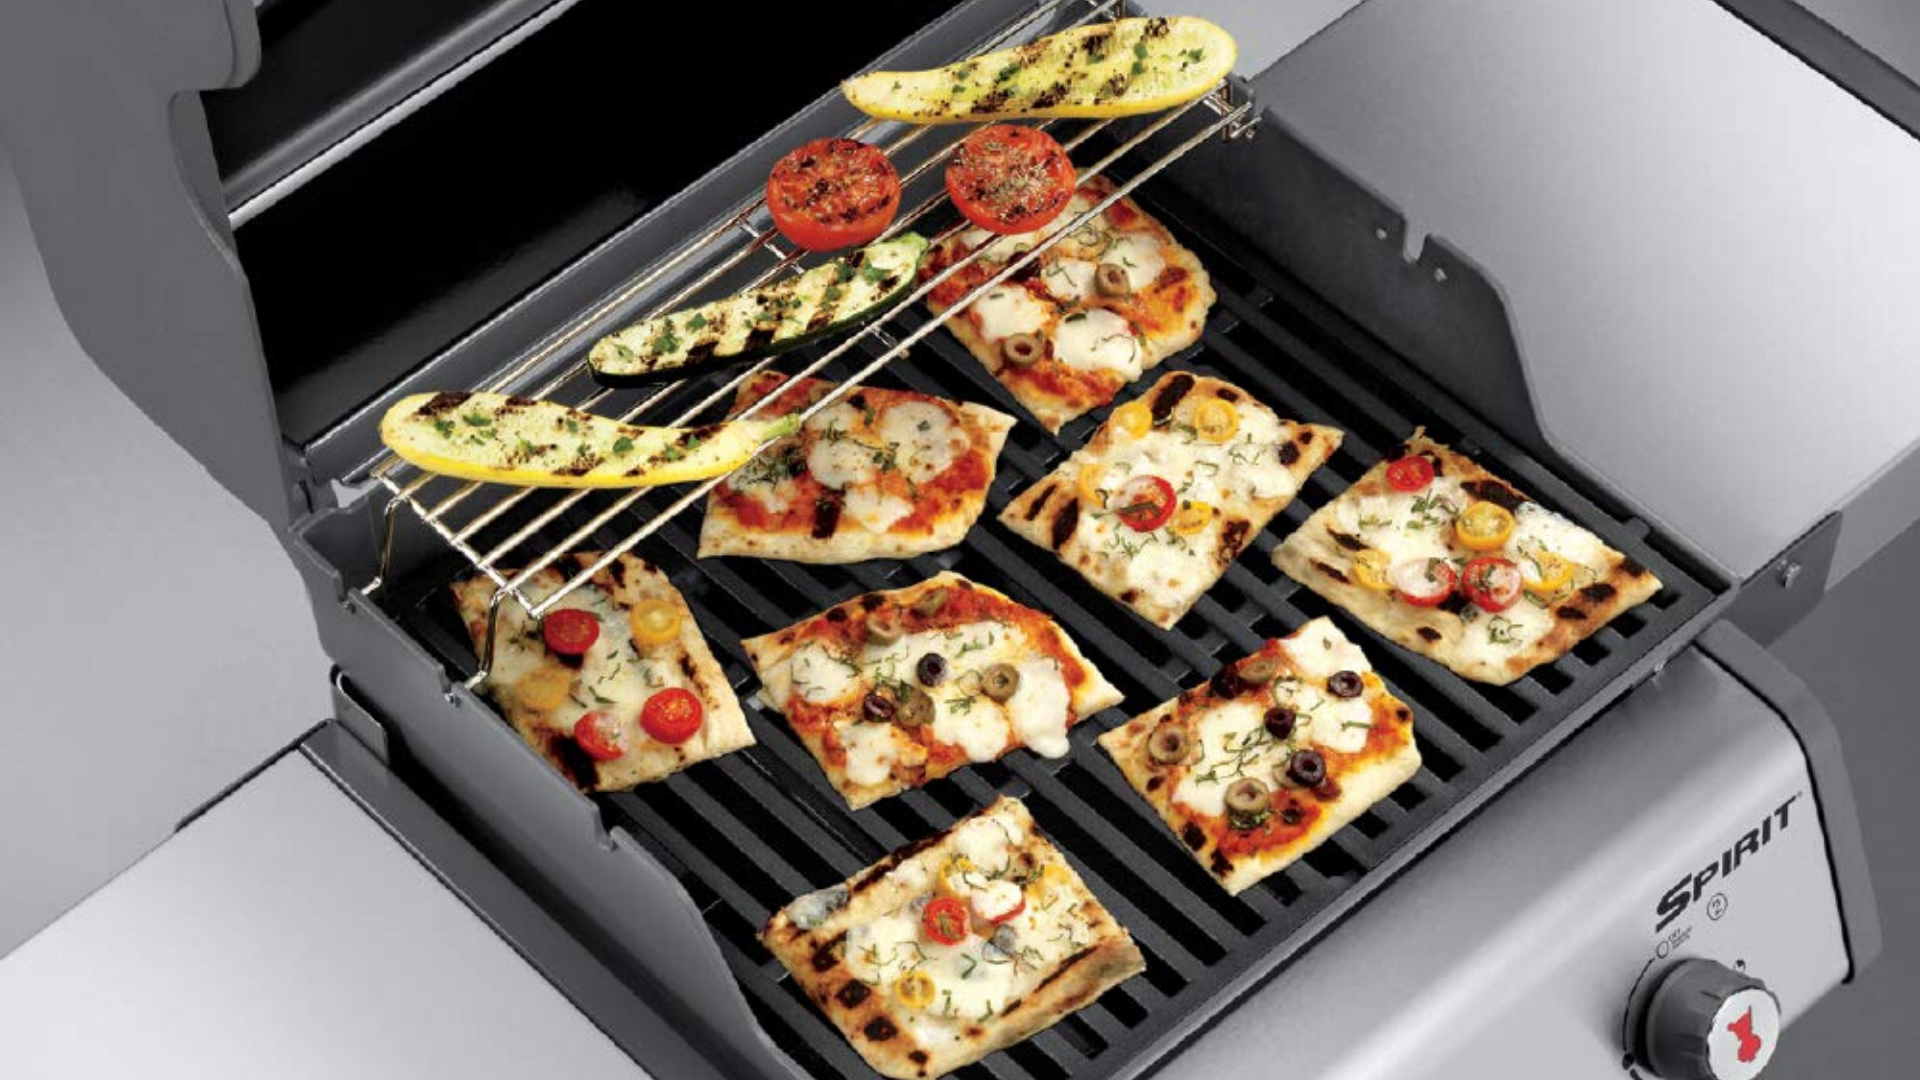 picture of pizza and veggies on weber spirit grill